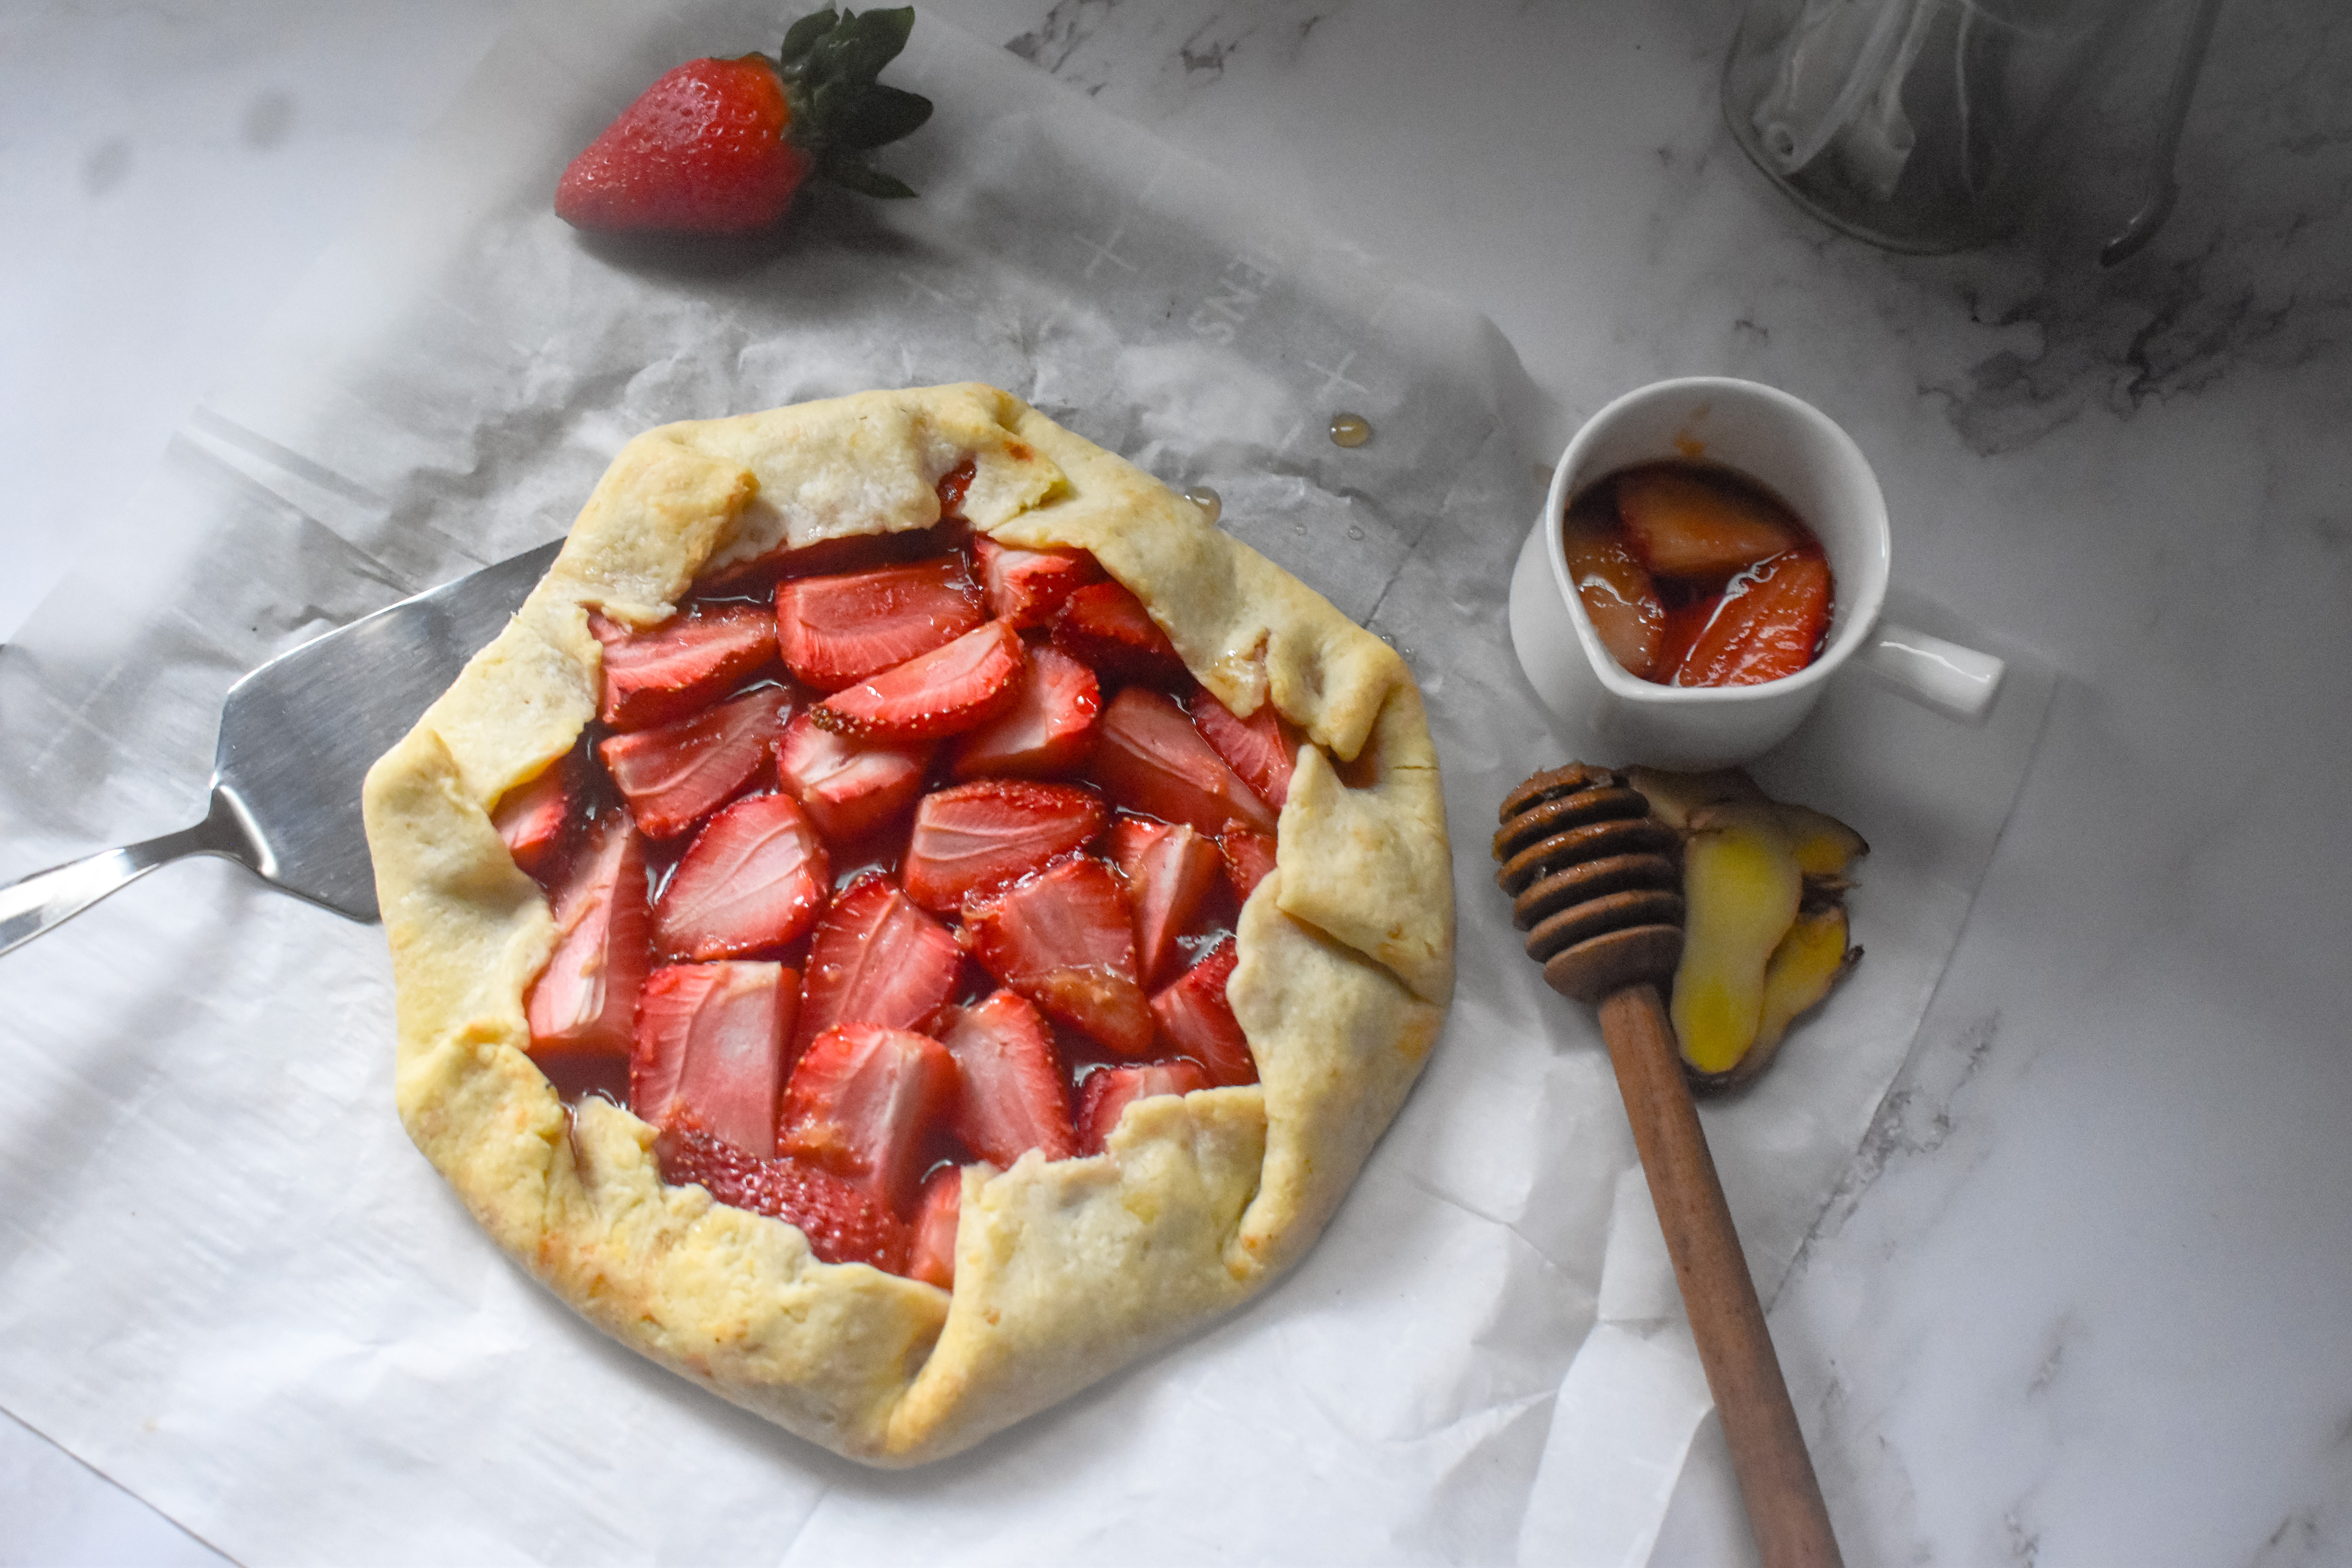 Strawberry Ginger Galette with Cheddar crust